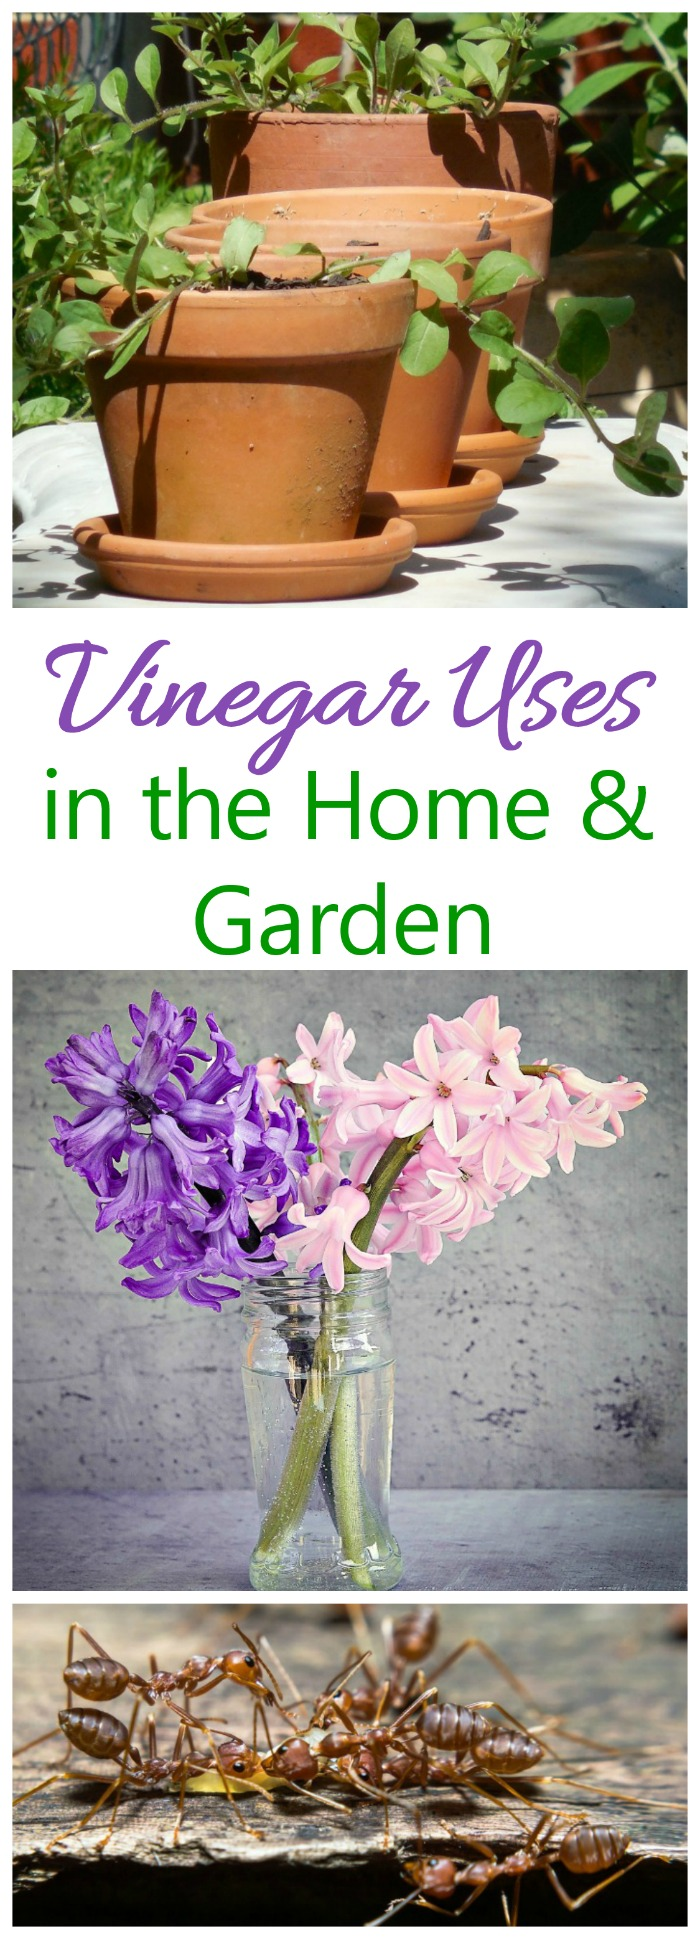 Vinegar can be used in many ways in the home and garden